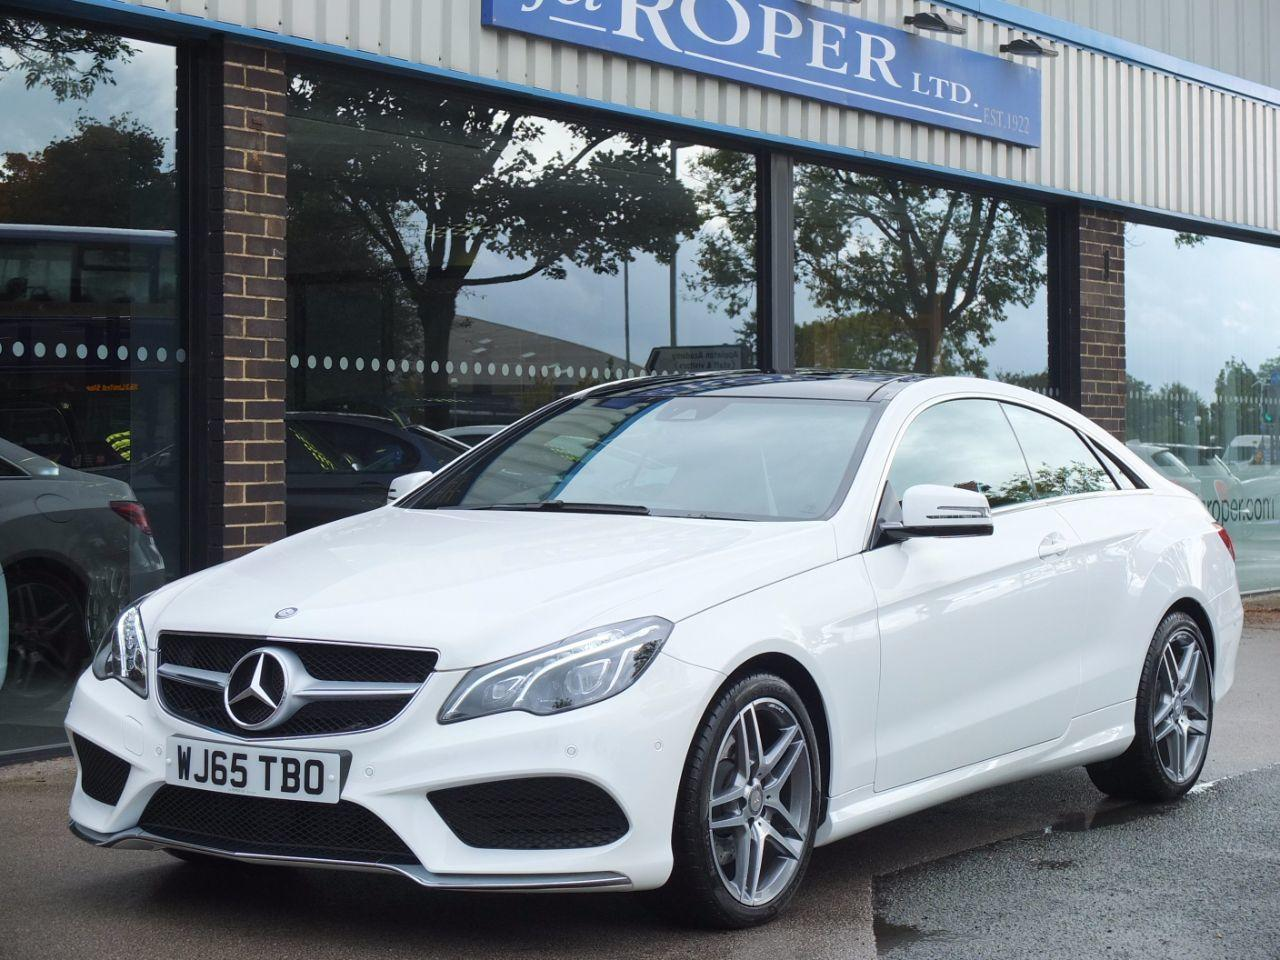 Mercedes-Benz E Class 2.1 E220 BlueTEC AMG Line Coupe 7G-Tronic Coupe Diesel Polar WhiteMercedes-Benz E Class 2.1 E220 BlueTEC AMG Line Coupe 7G-Tronic Coupe Diesel Polar White at fa Roper Ltd Bradford